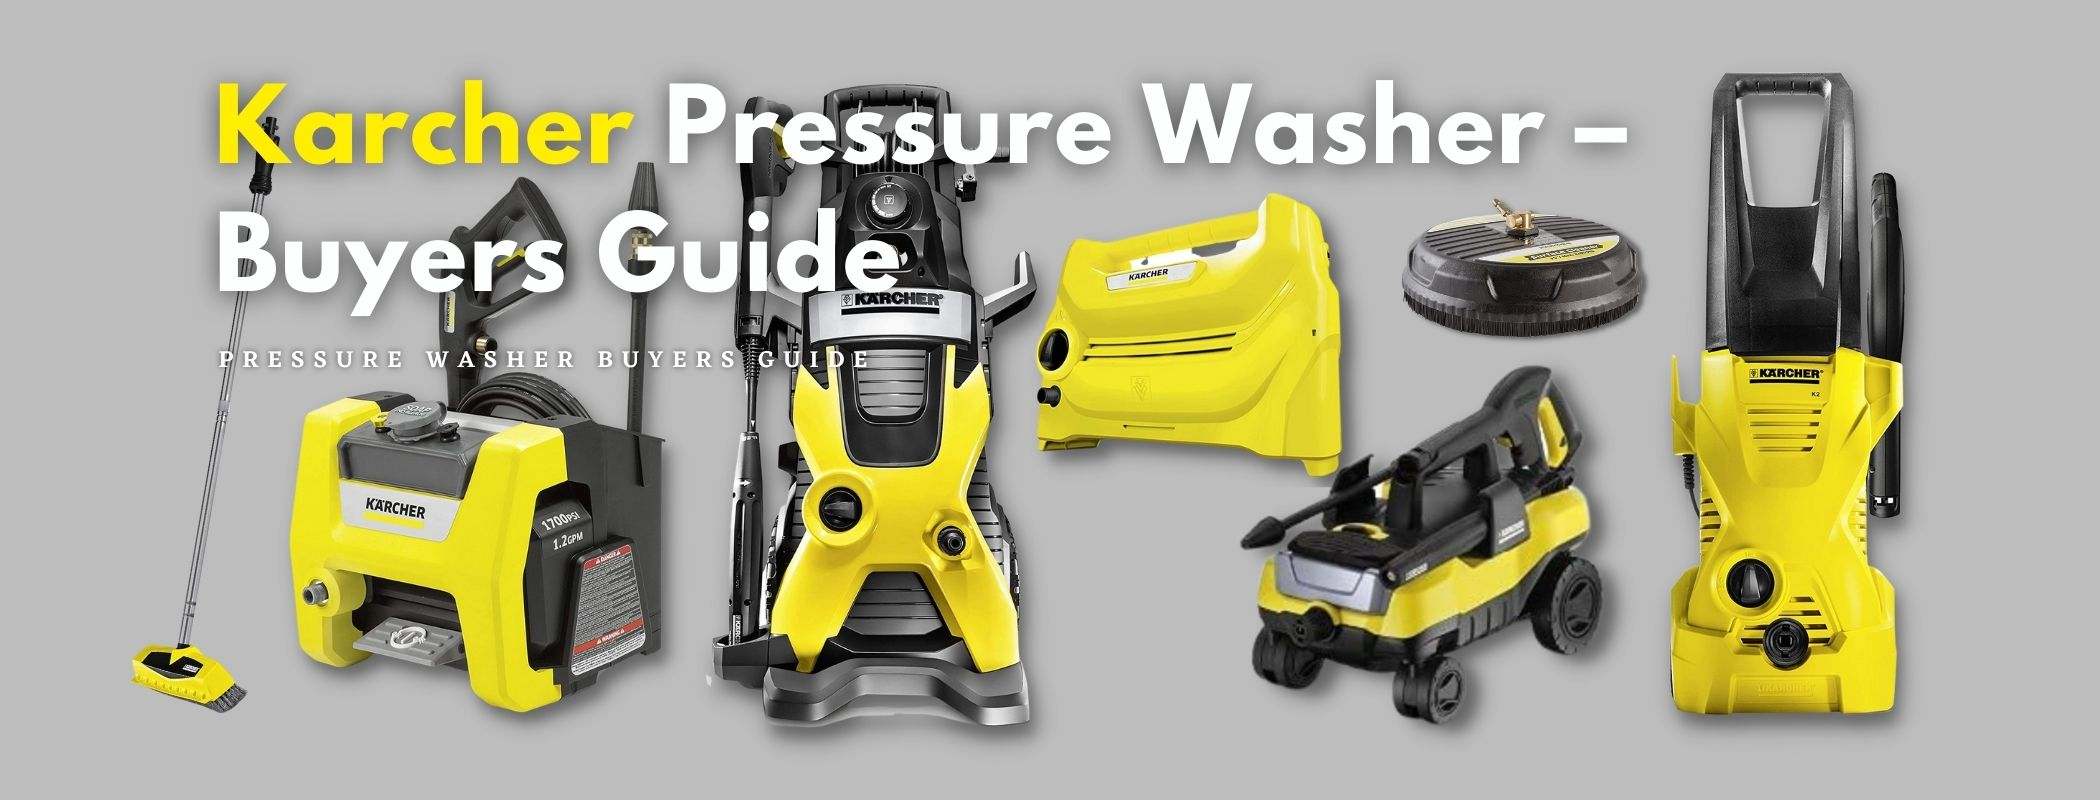 Karcher Pressure Washer – Buyers Guide